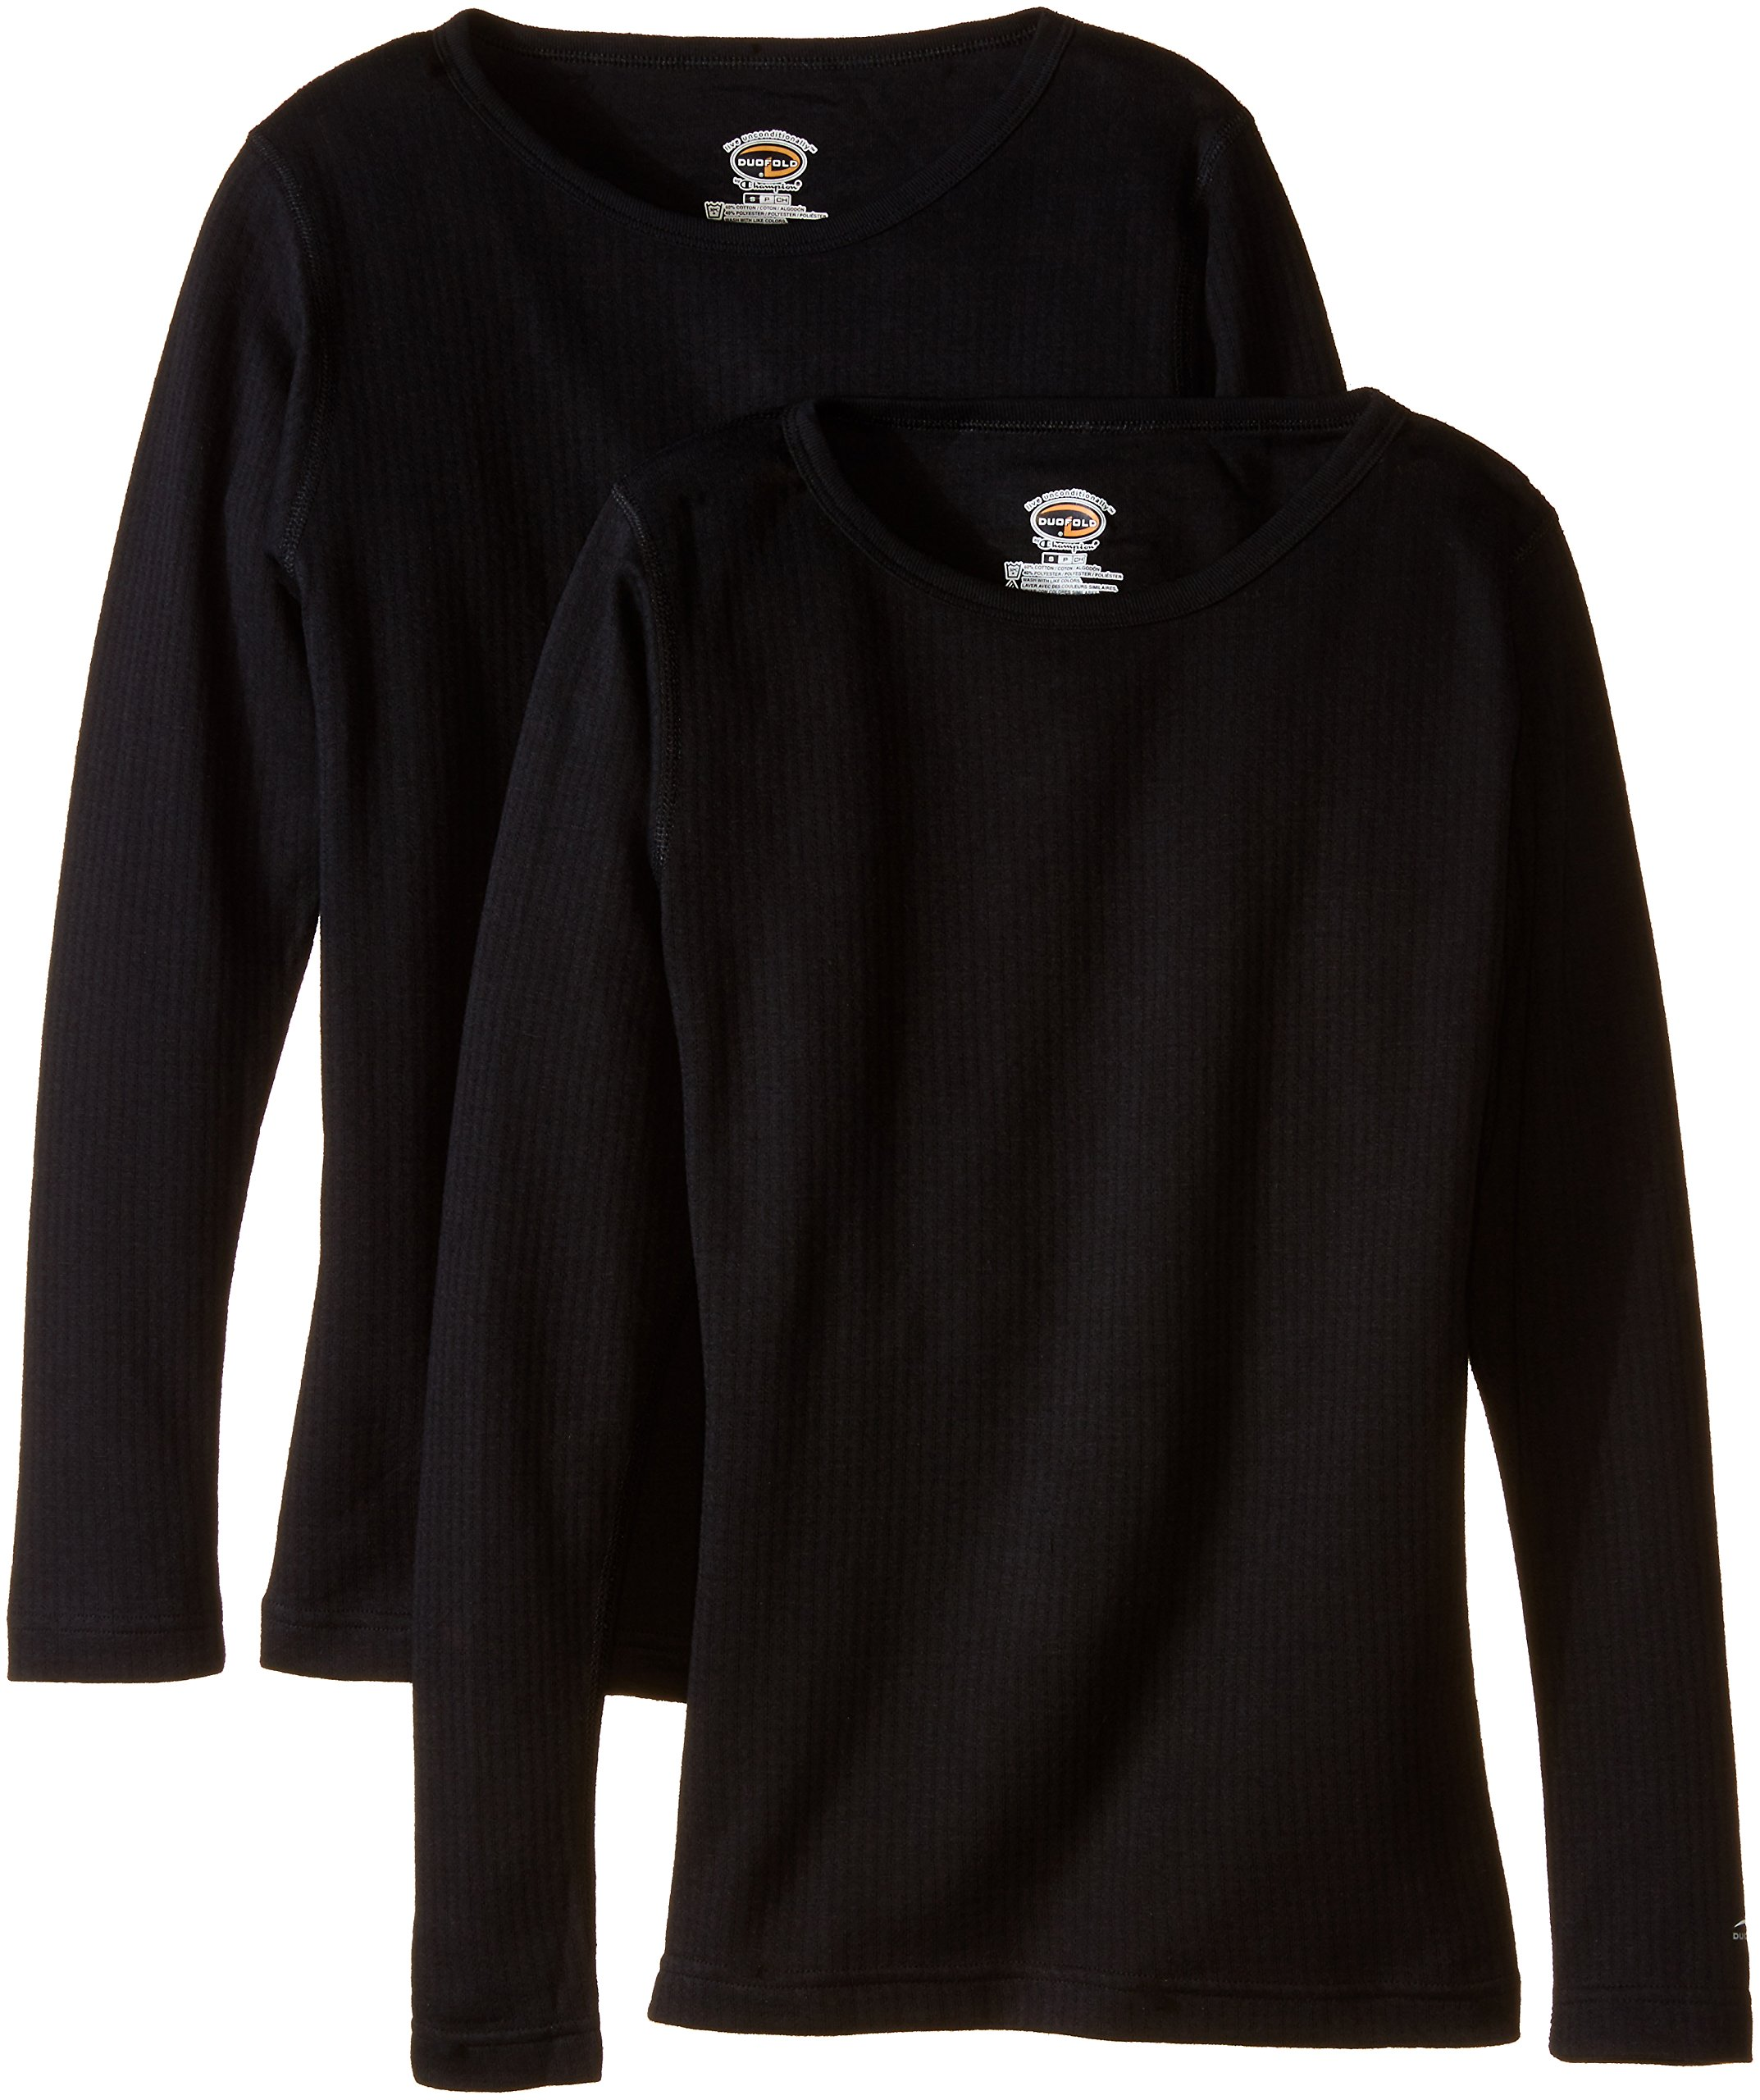 Duofold Women's Mid Weight Wicking Thermal Shirts (Pack of 2), Black, Medium